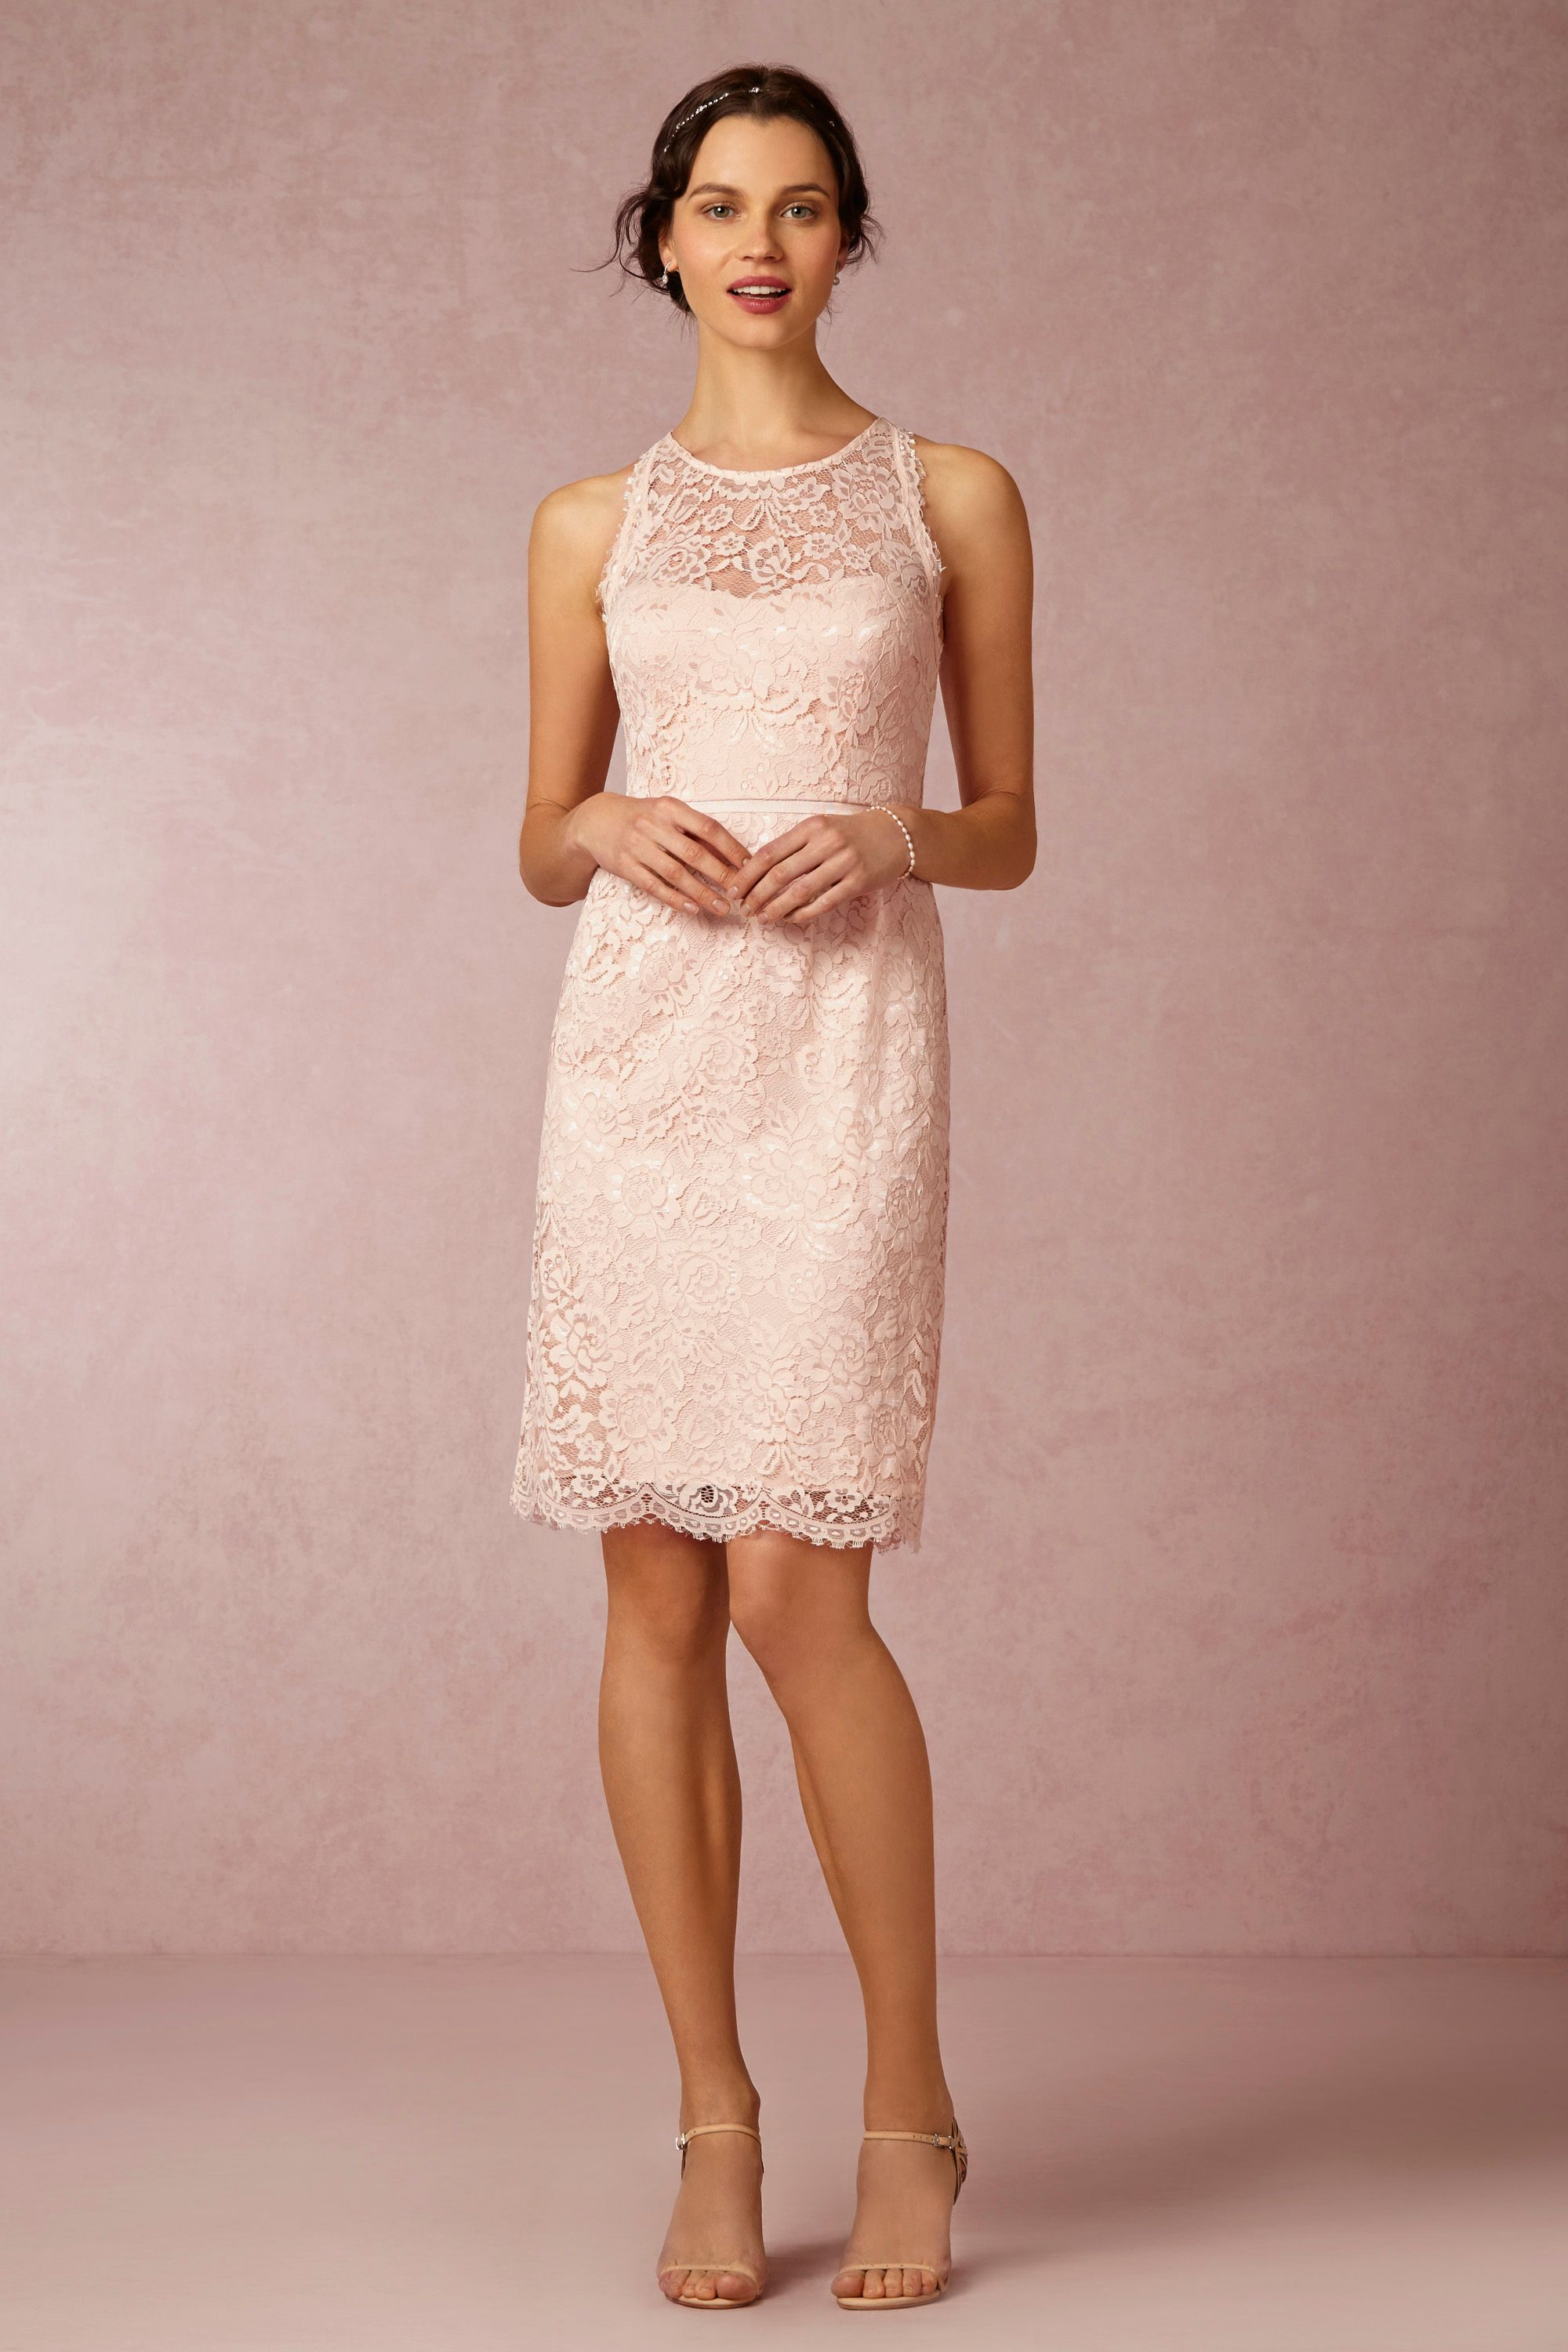 Sloane dress from bhldn dresses pinterest wedding and weddings